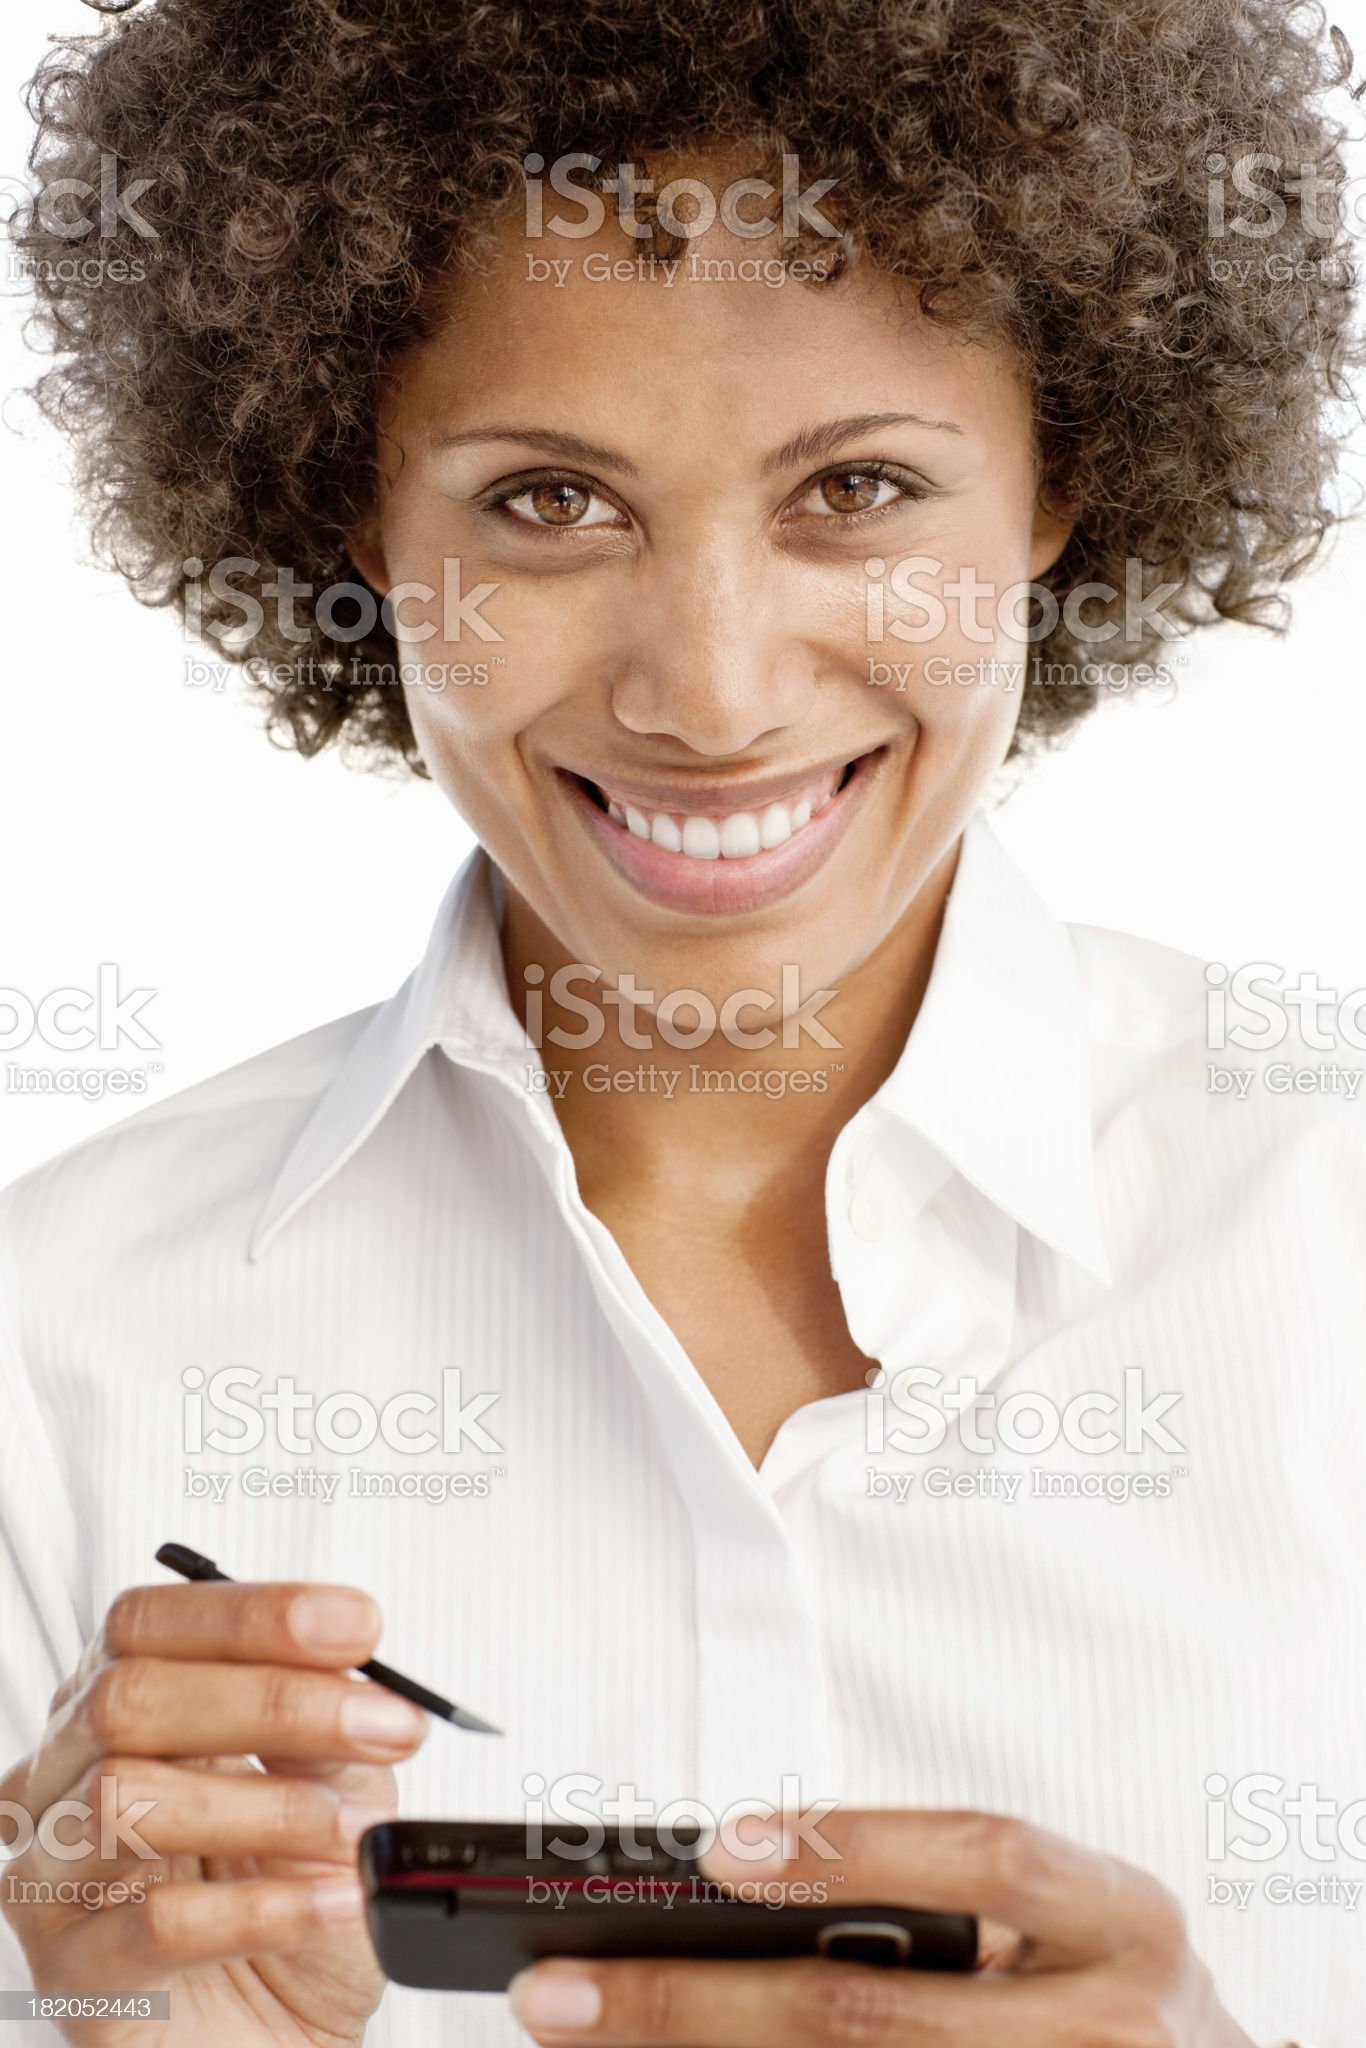 Woman Using Stylus on a PDA royalty-free stock photo